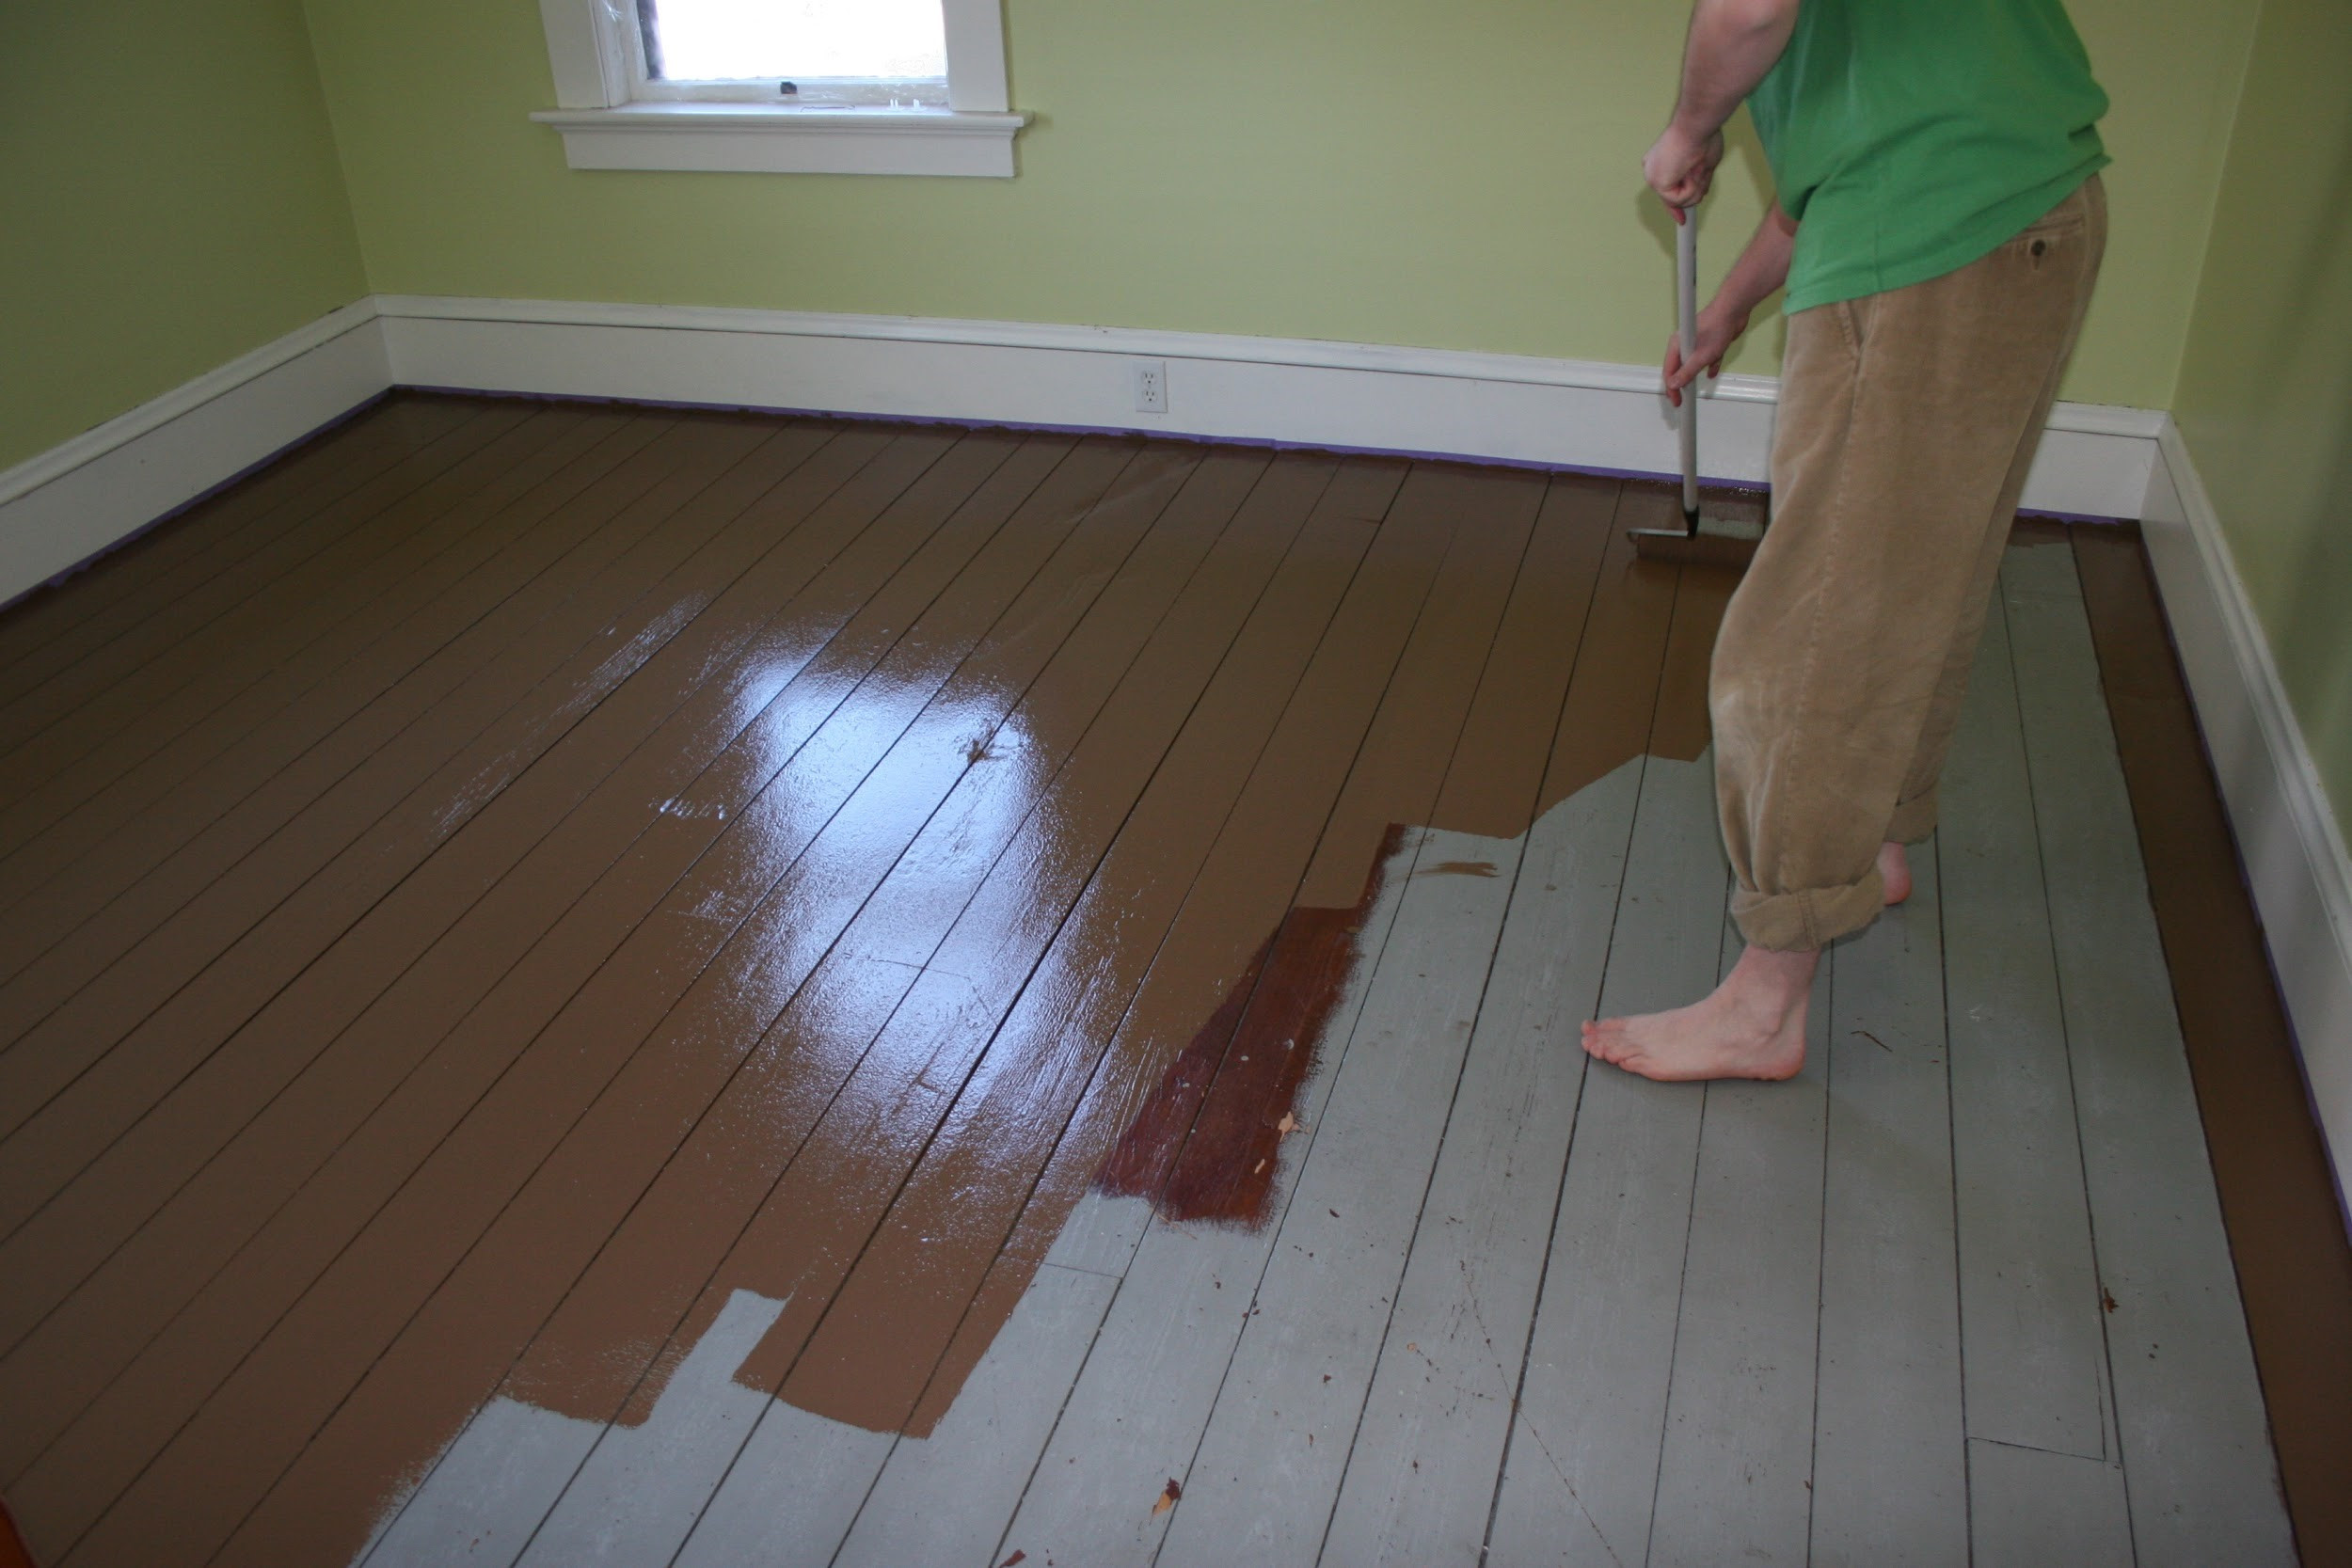 home depot hardwood flooring clearance of 13 awesome home depot hardwood flooring collection dizpos com with regard to home depot hardwood flooring fresh outstanding cherry wood floors paint color utfchiz house pinterest photograph of